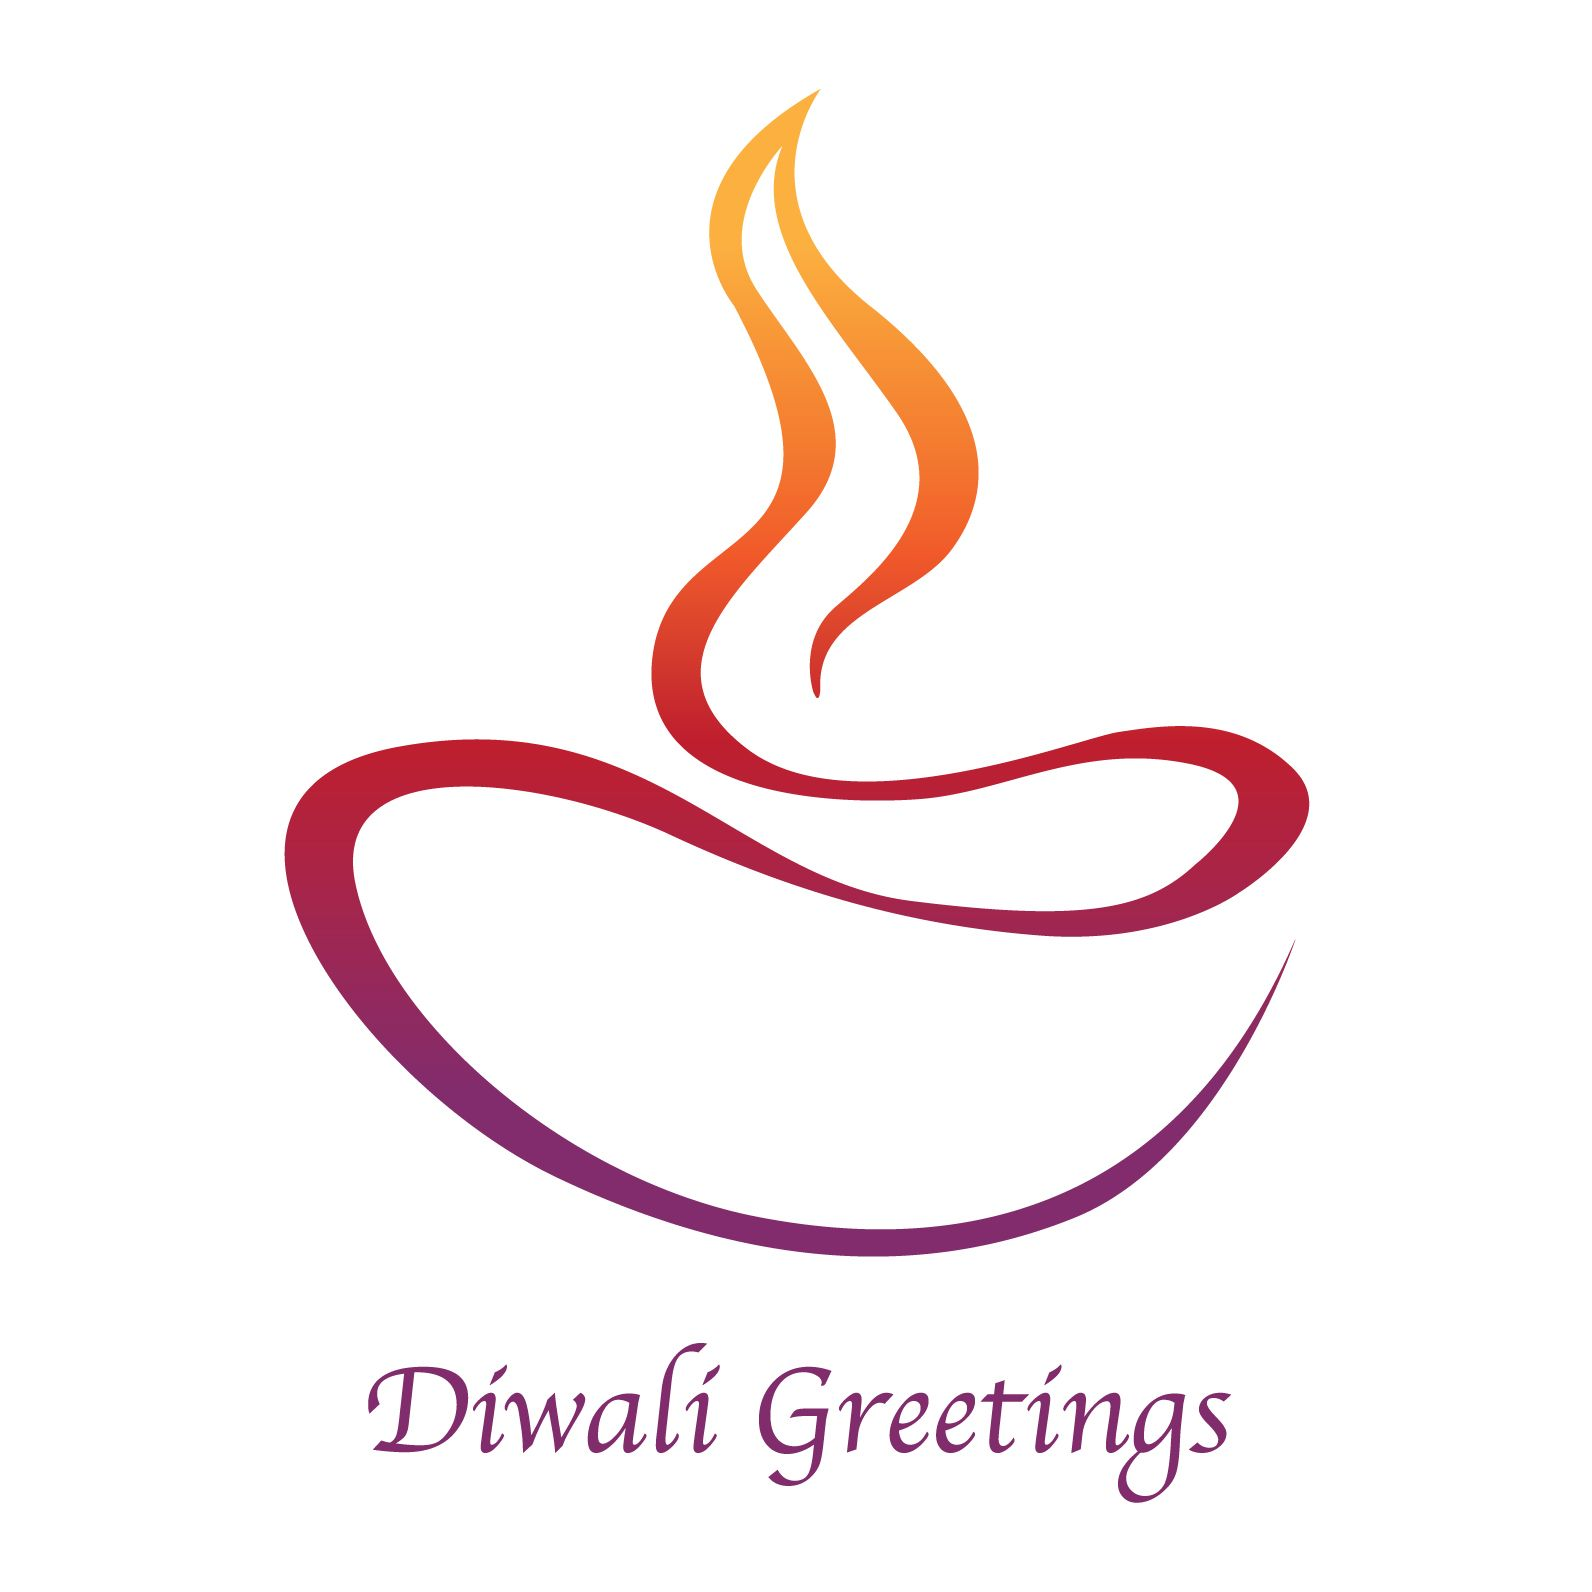 Celebrating the victory of light over darkness, our colourful Diwali.